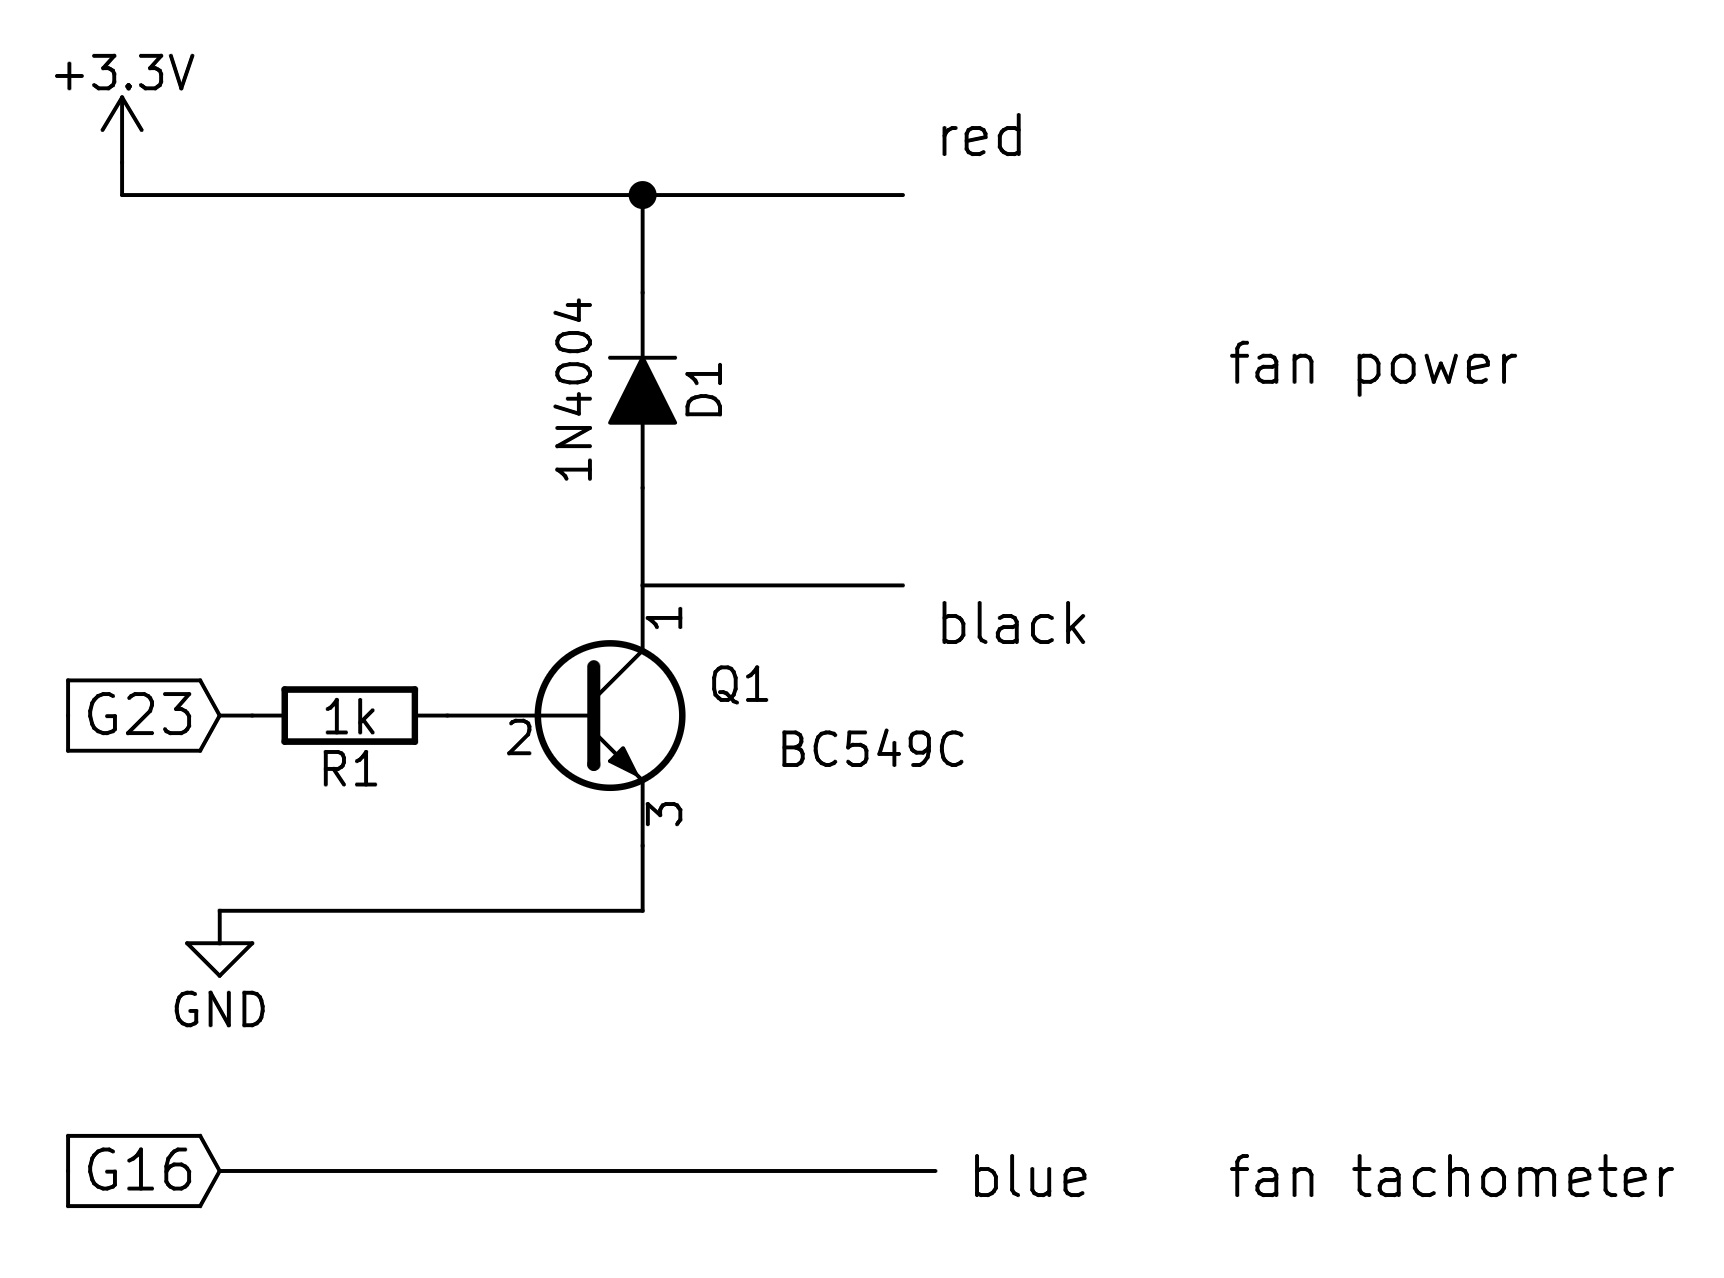 wiring 3w pwm fan wire diagram diagrams for wiring bathroom fan and lights  at fashall.co